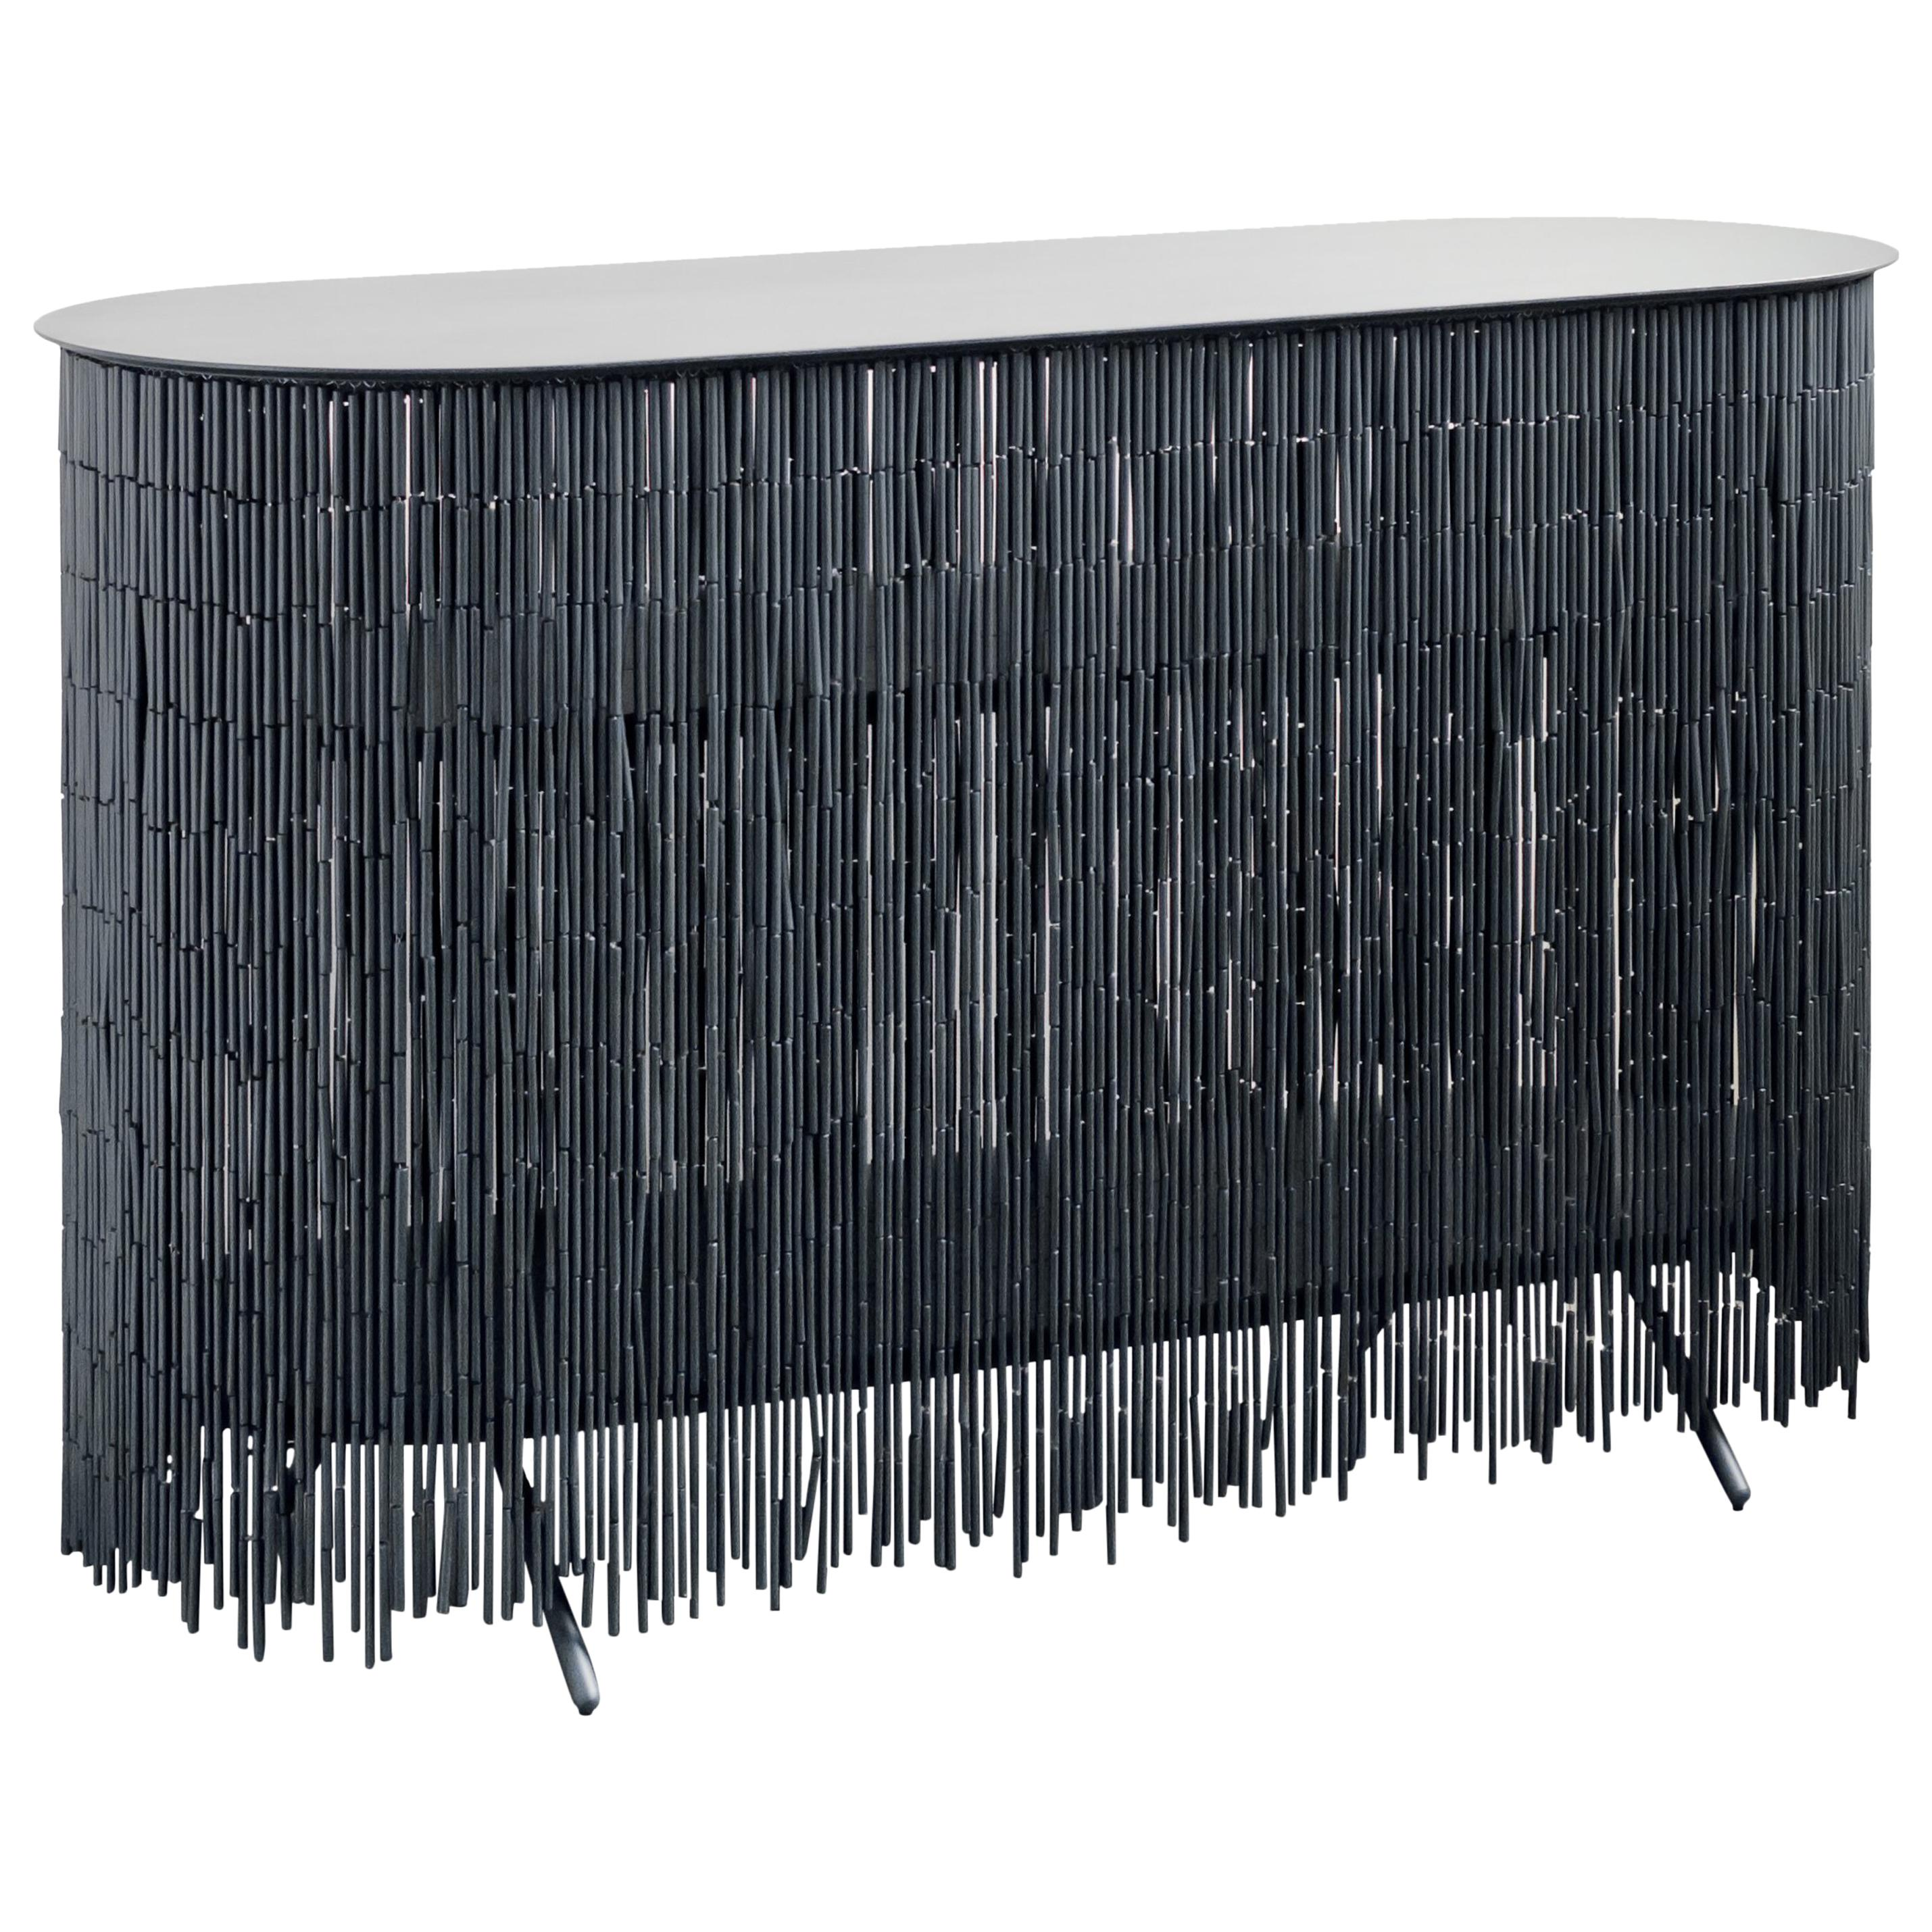 Keefer Credenza, Calen Knauf, Black Bamboo Beaded Console Table Oak - 48""